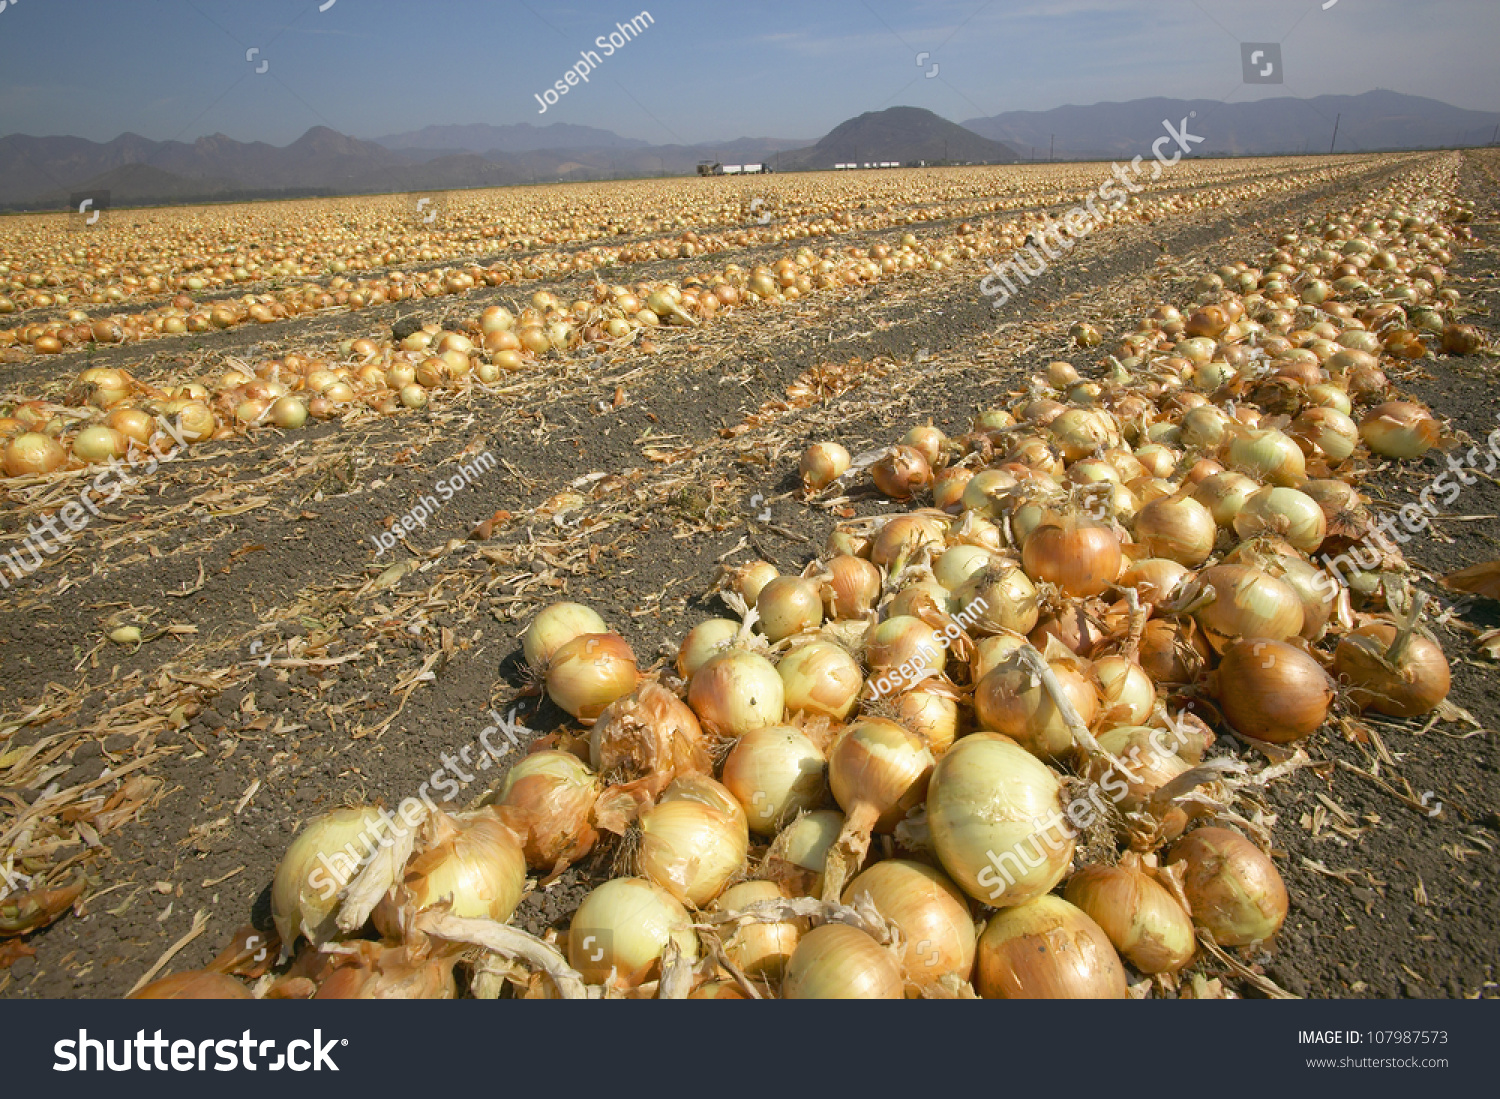 Giant Onion Field Oxnard California Stock Photo 107987573